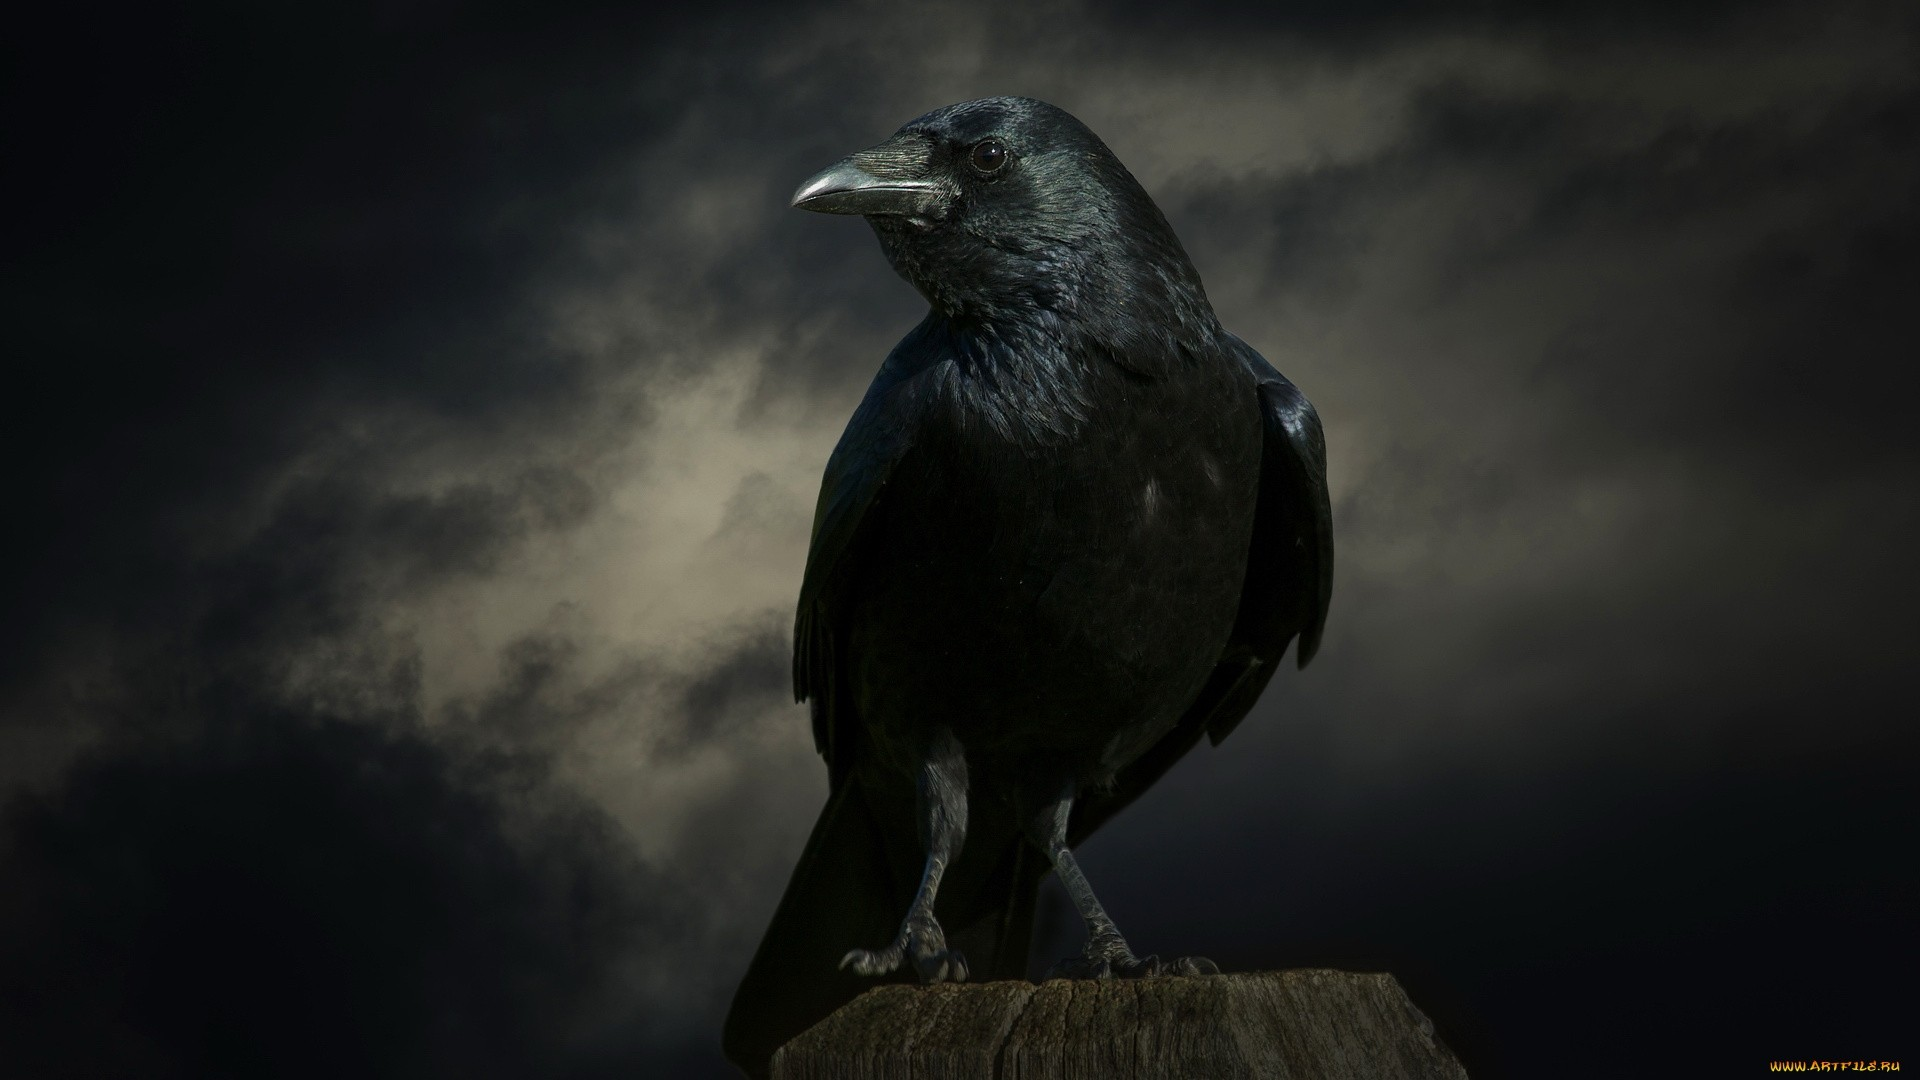 Raven Wallpaper and Background